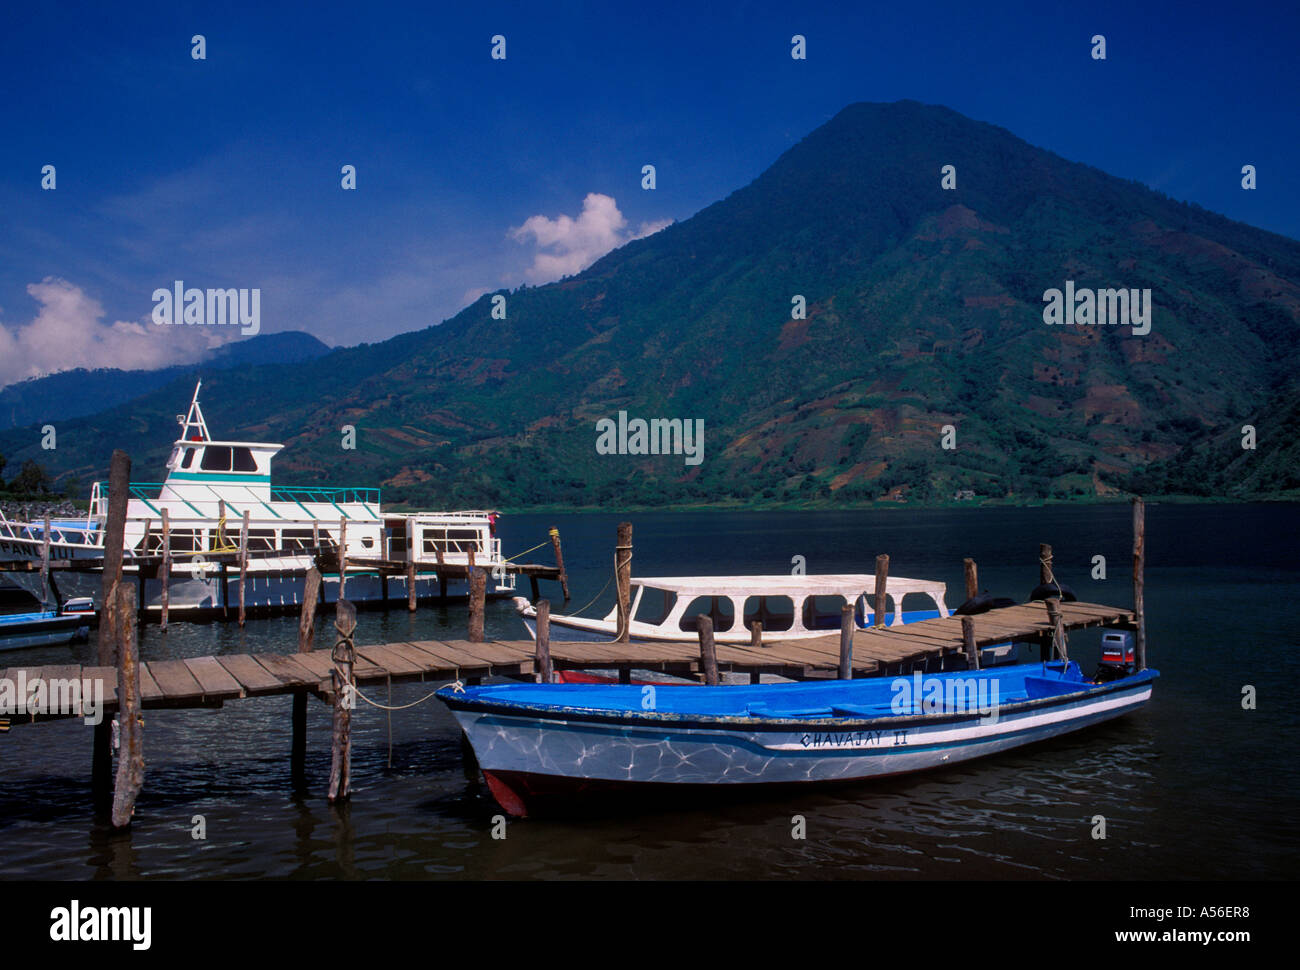 boats at dock, ferryboat service, town of Santiago Atitlan, San Pedro Volcano in the background, Solola Department, Guatemala, Central America - Stock Image